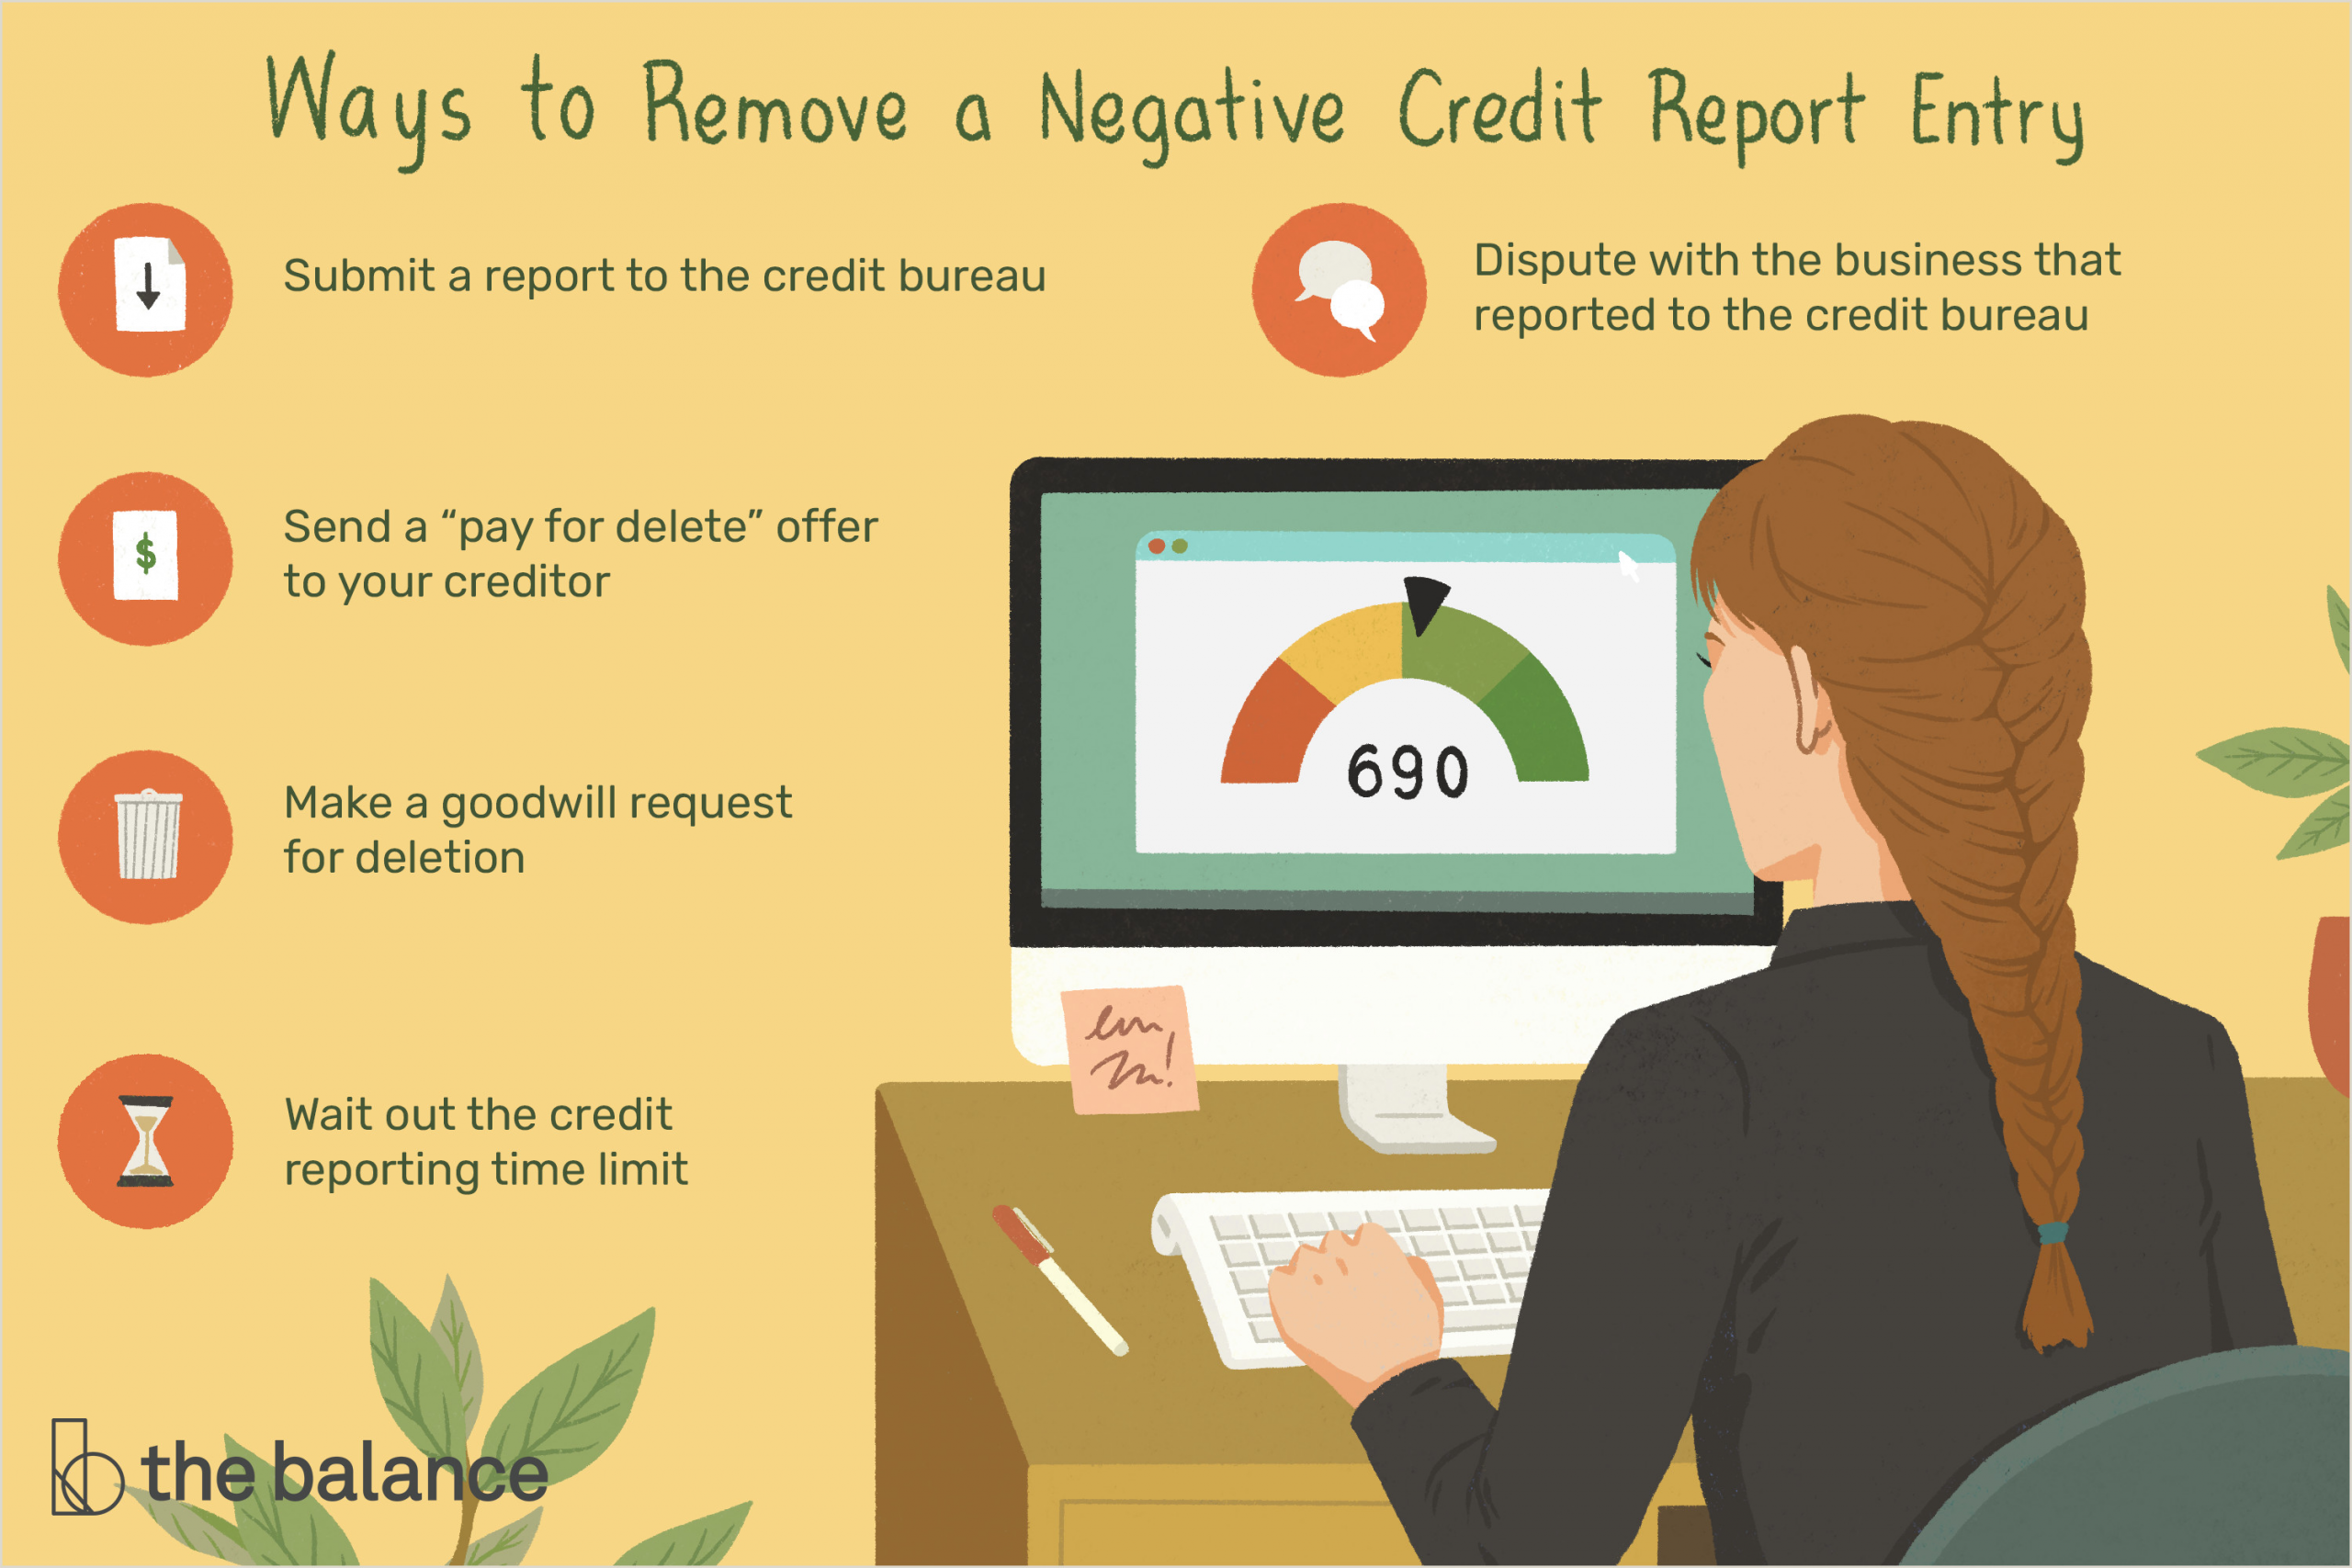 Best Business Cards For Fair Credict Strategies To Remove Negative Credit Report Entries